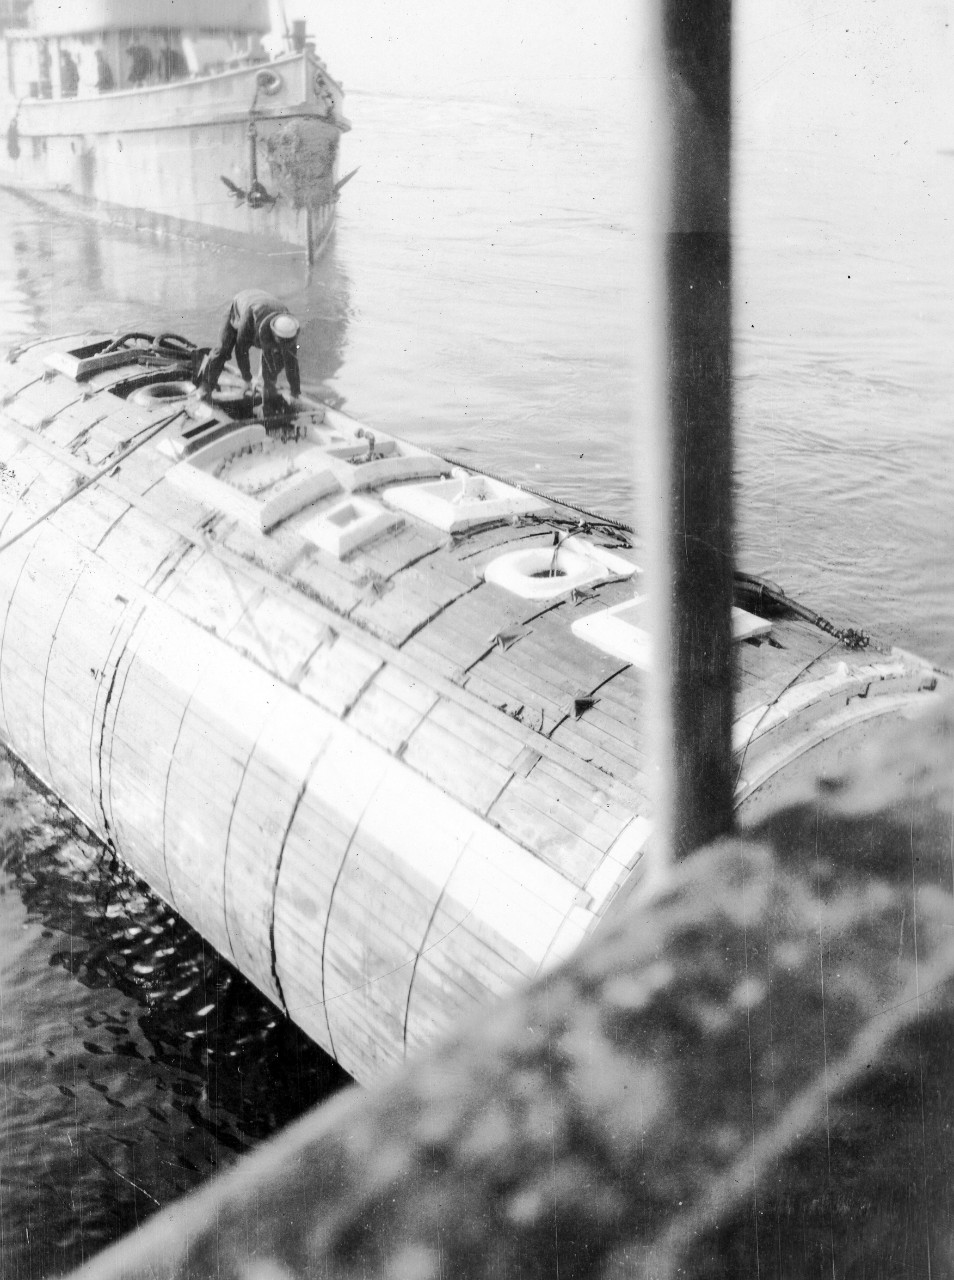 Pontoon being readied for attachment to S-4 during 1928 salvage operations.